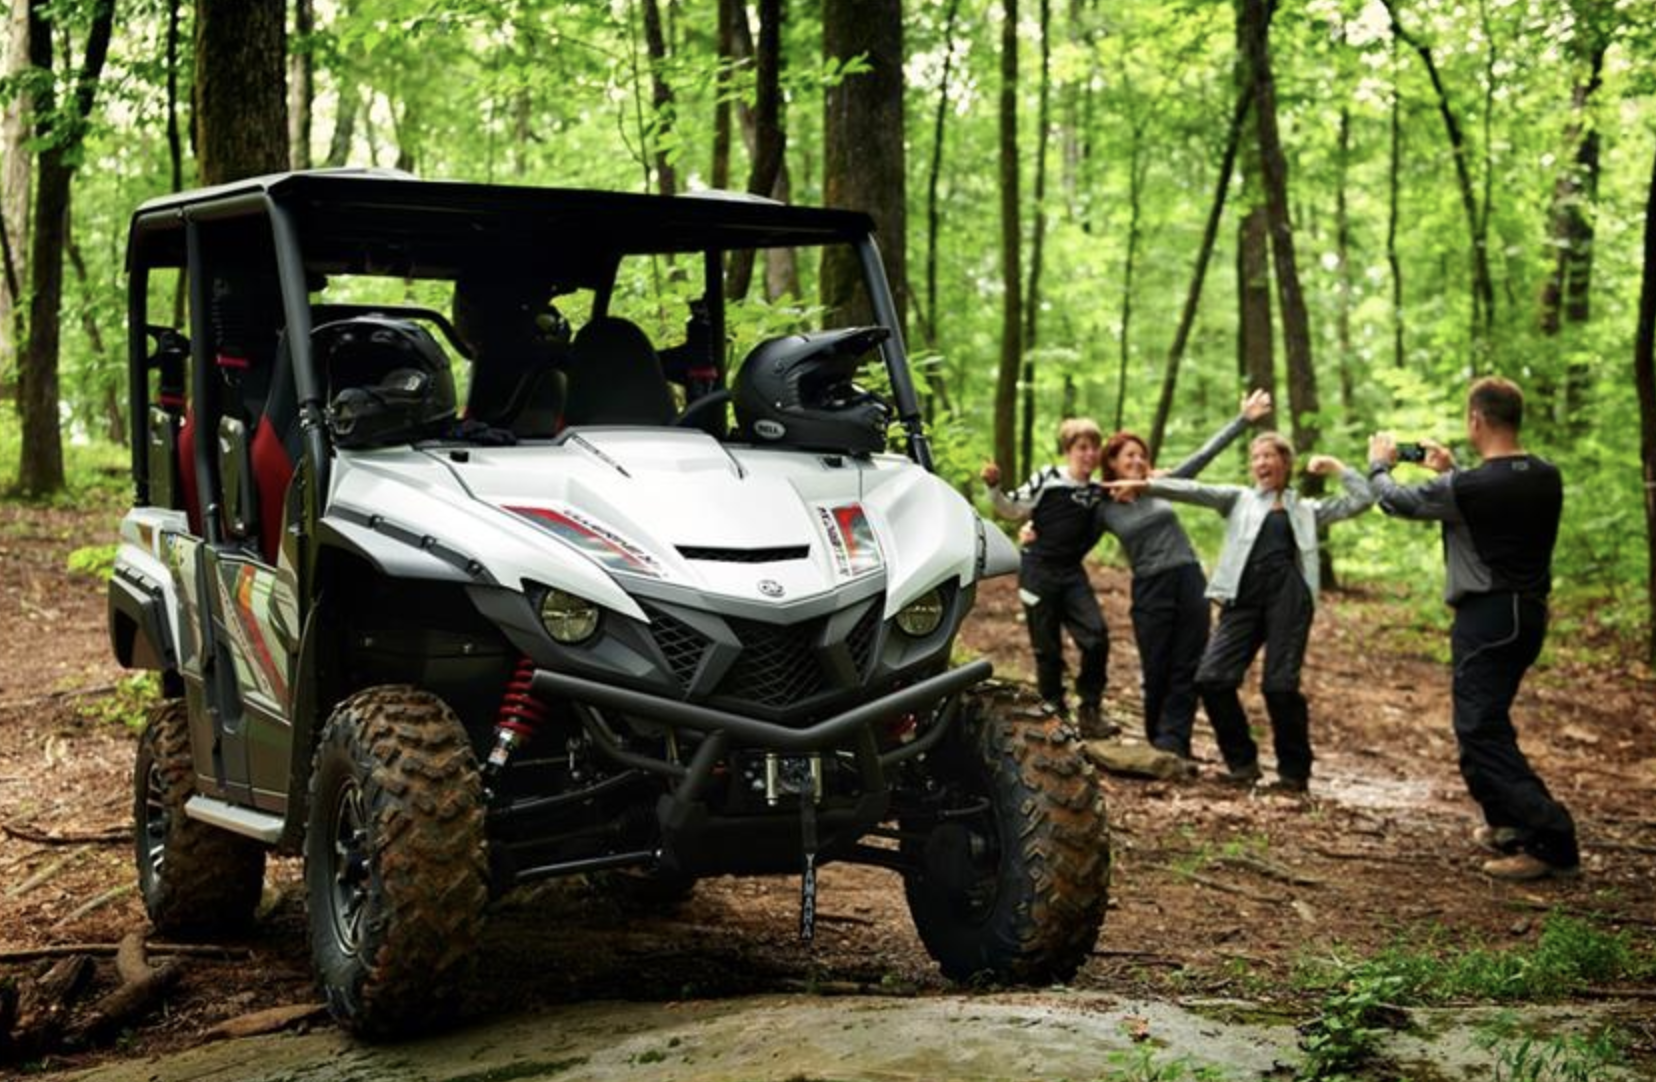 For What Matters Most Family Wolverinex4 Realizeyouradventure Provenoffroad Sxs Monster Trucks Yamaha Sides